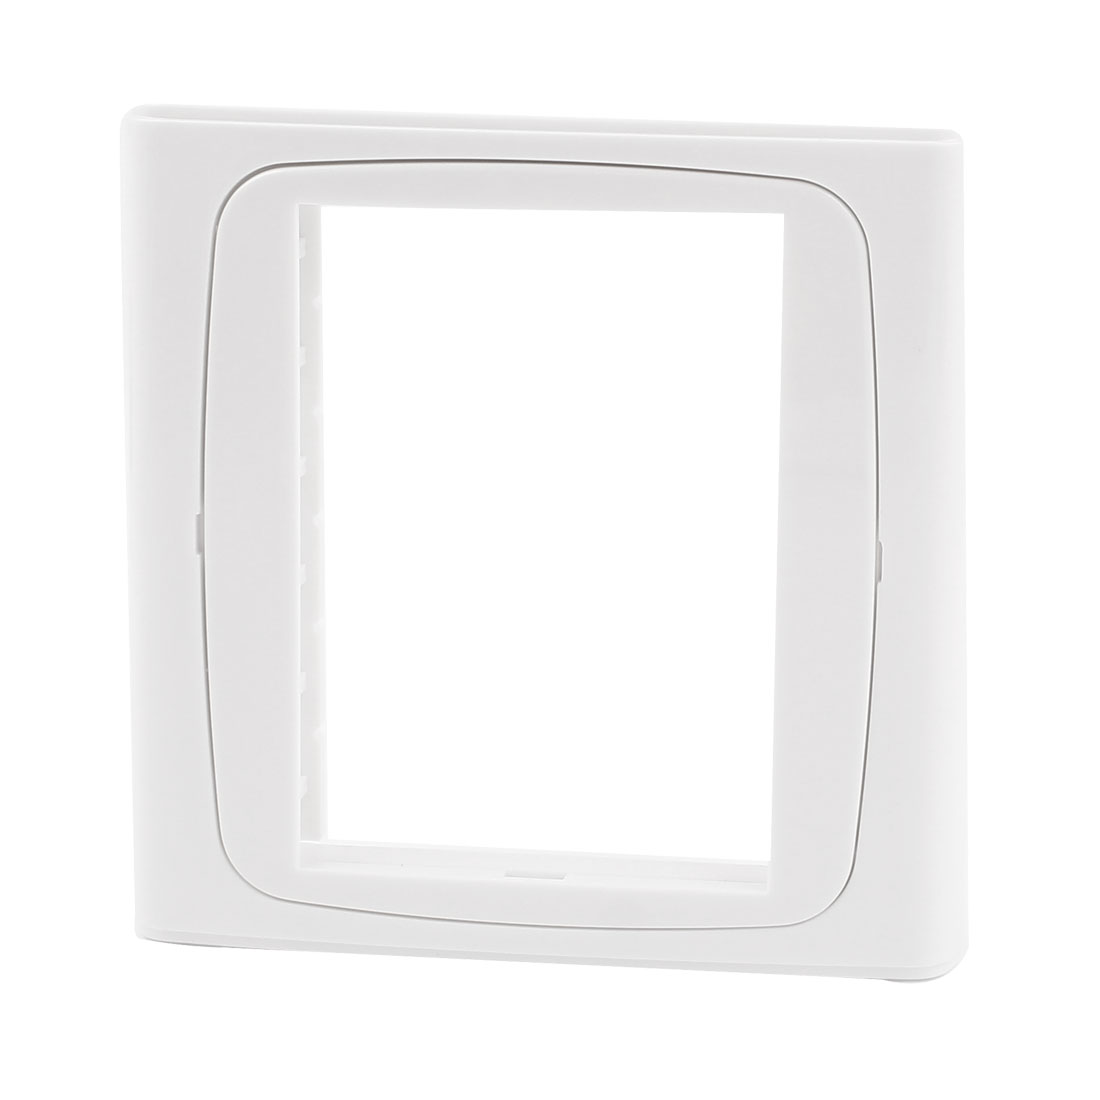 Home Office White Plastic 3 Gang Switch Socket Panel Blank Wall Plate 86x86mm